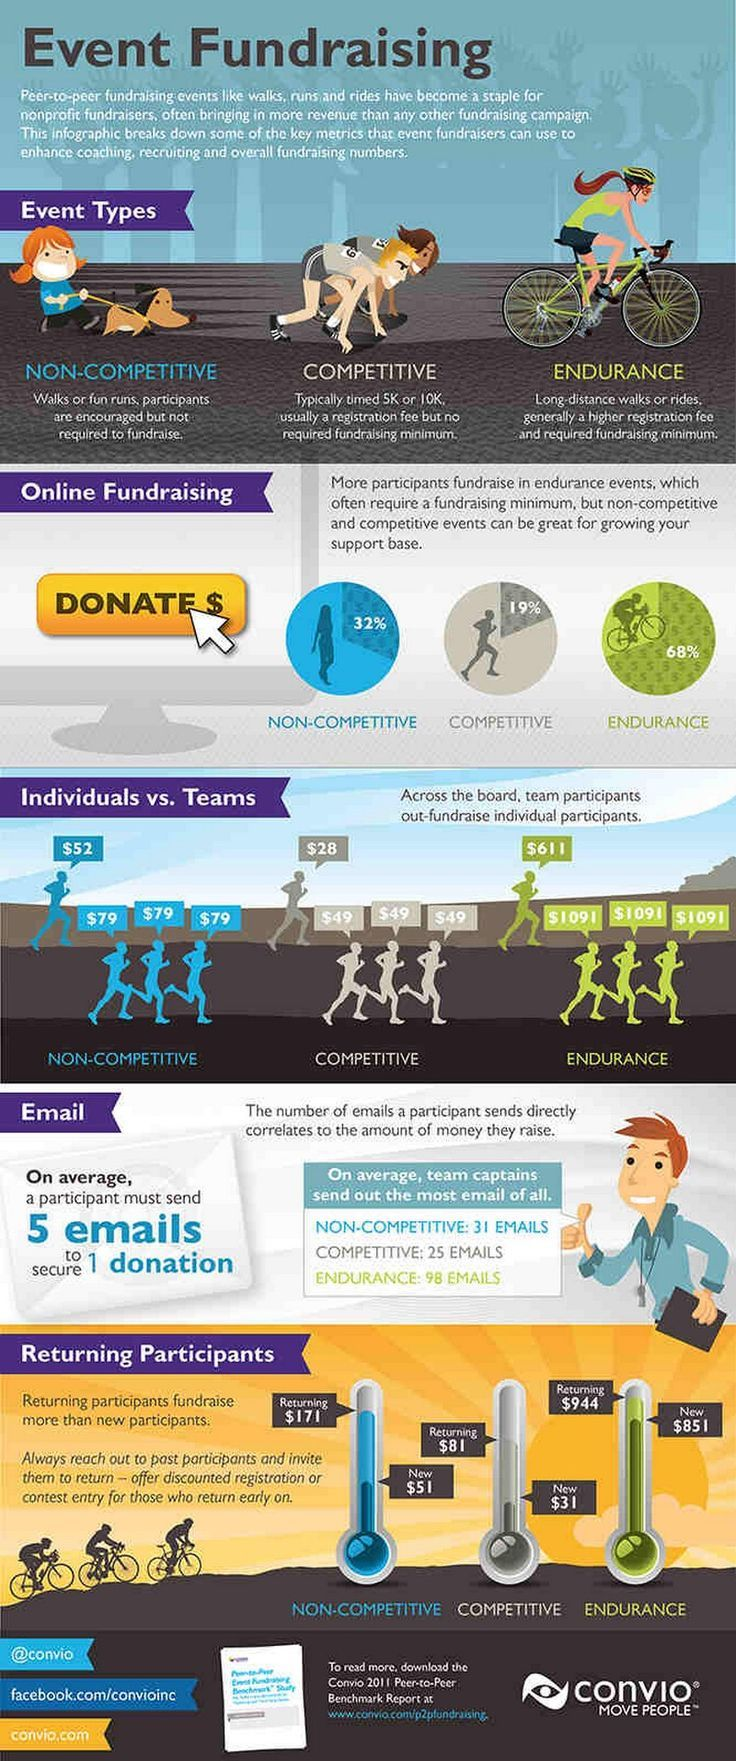 Infographic Peer to Peer Fundraising Events Raise the Most